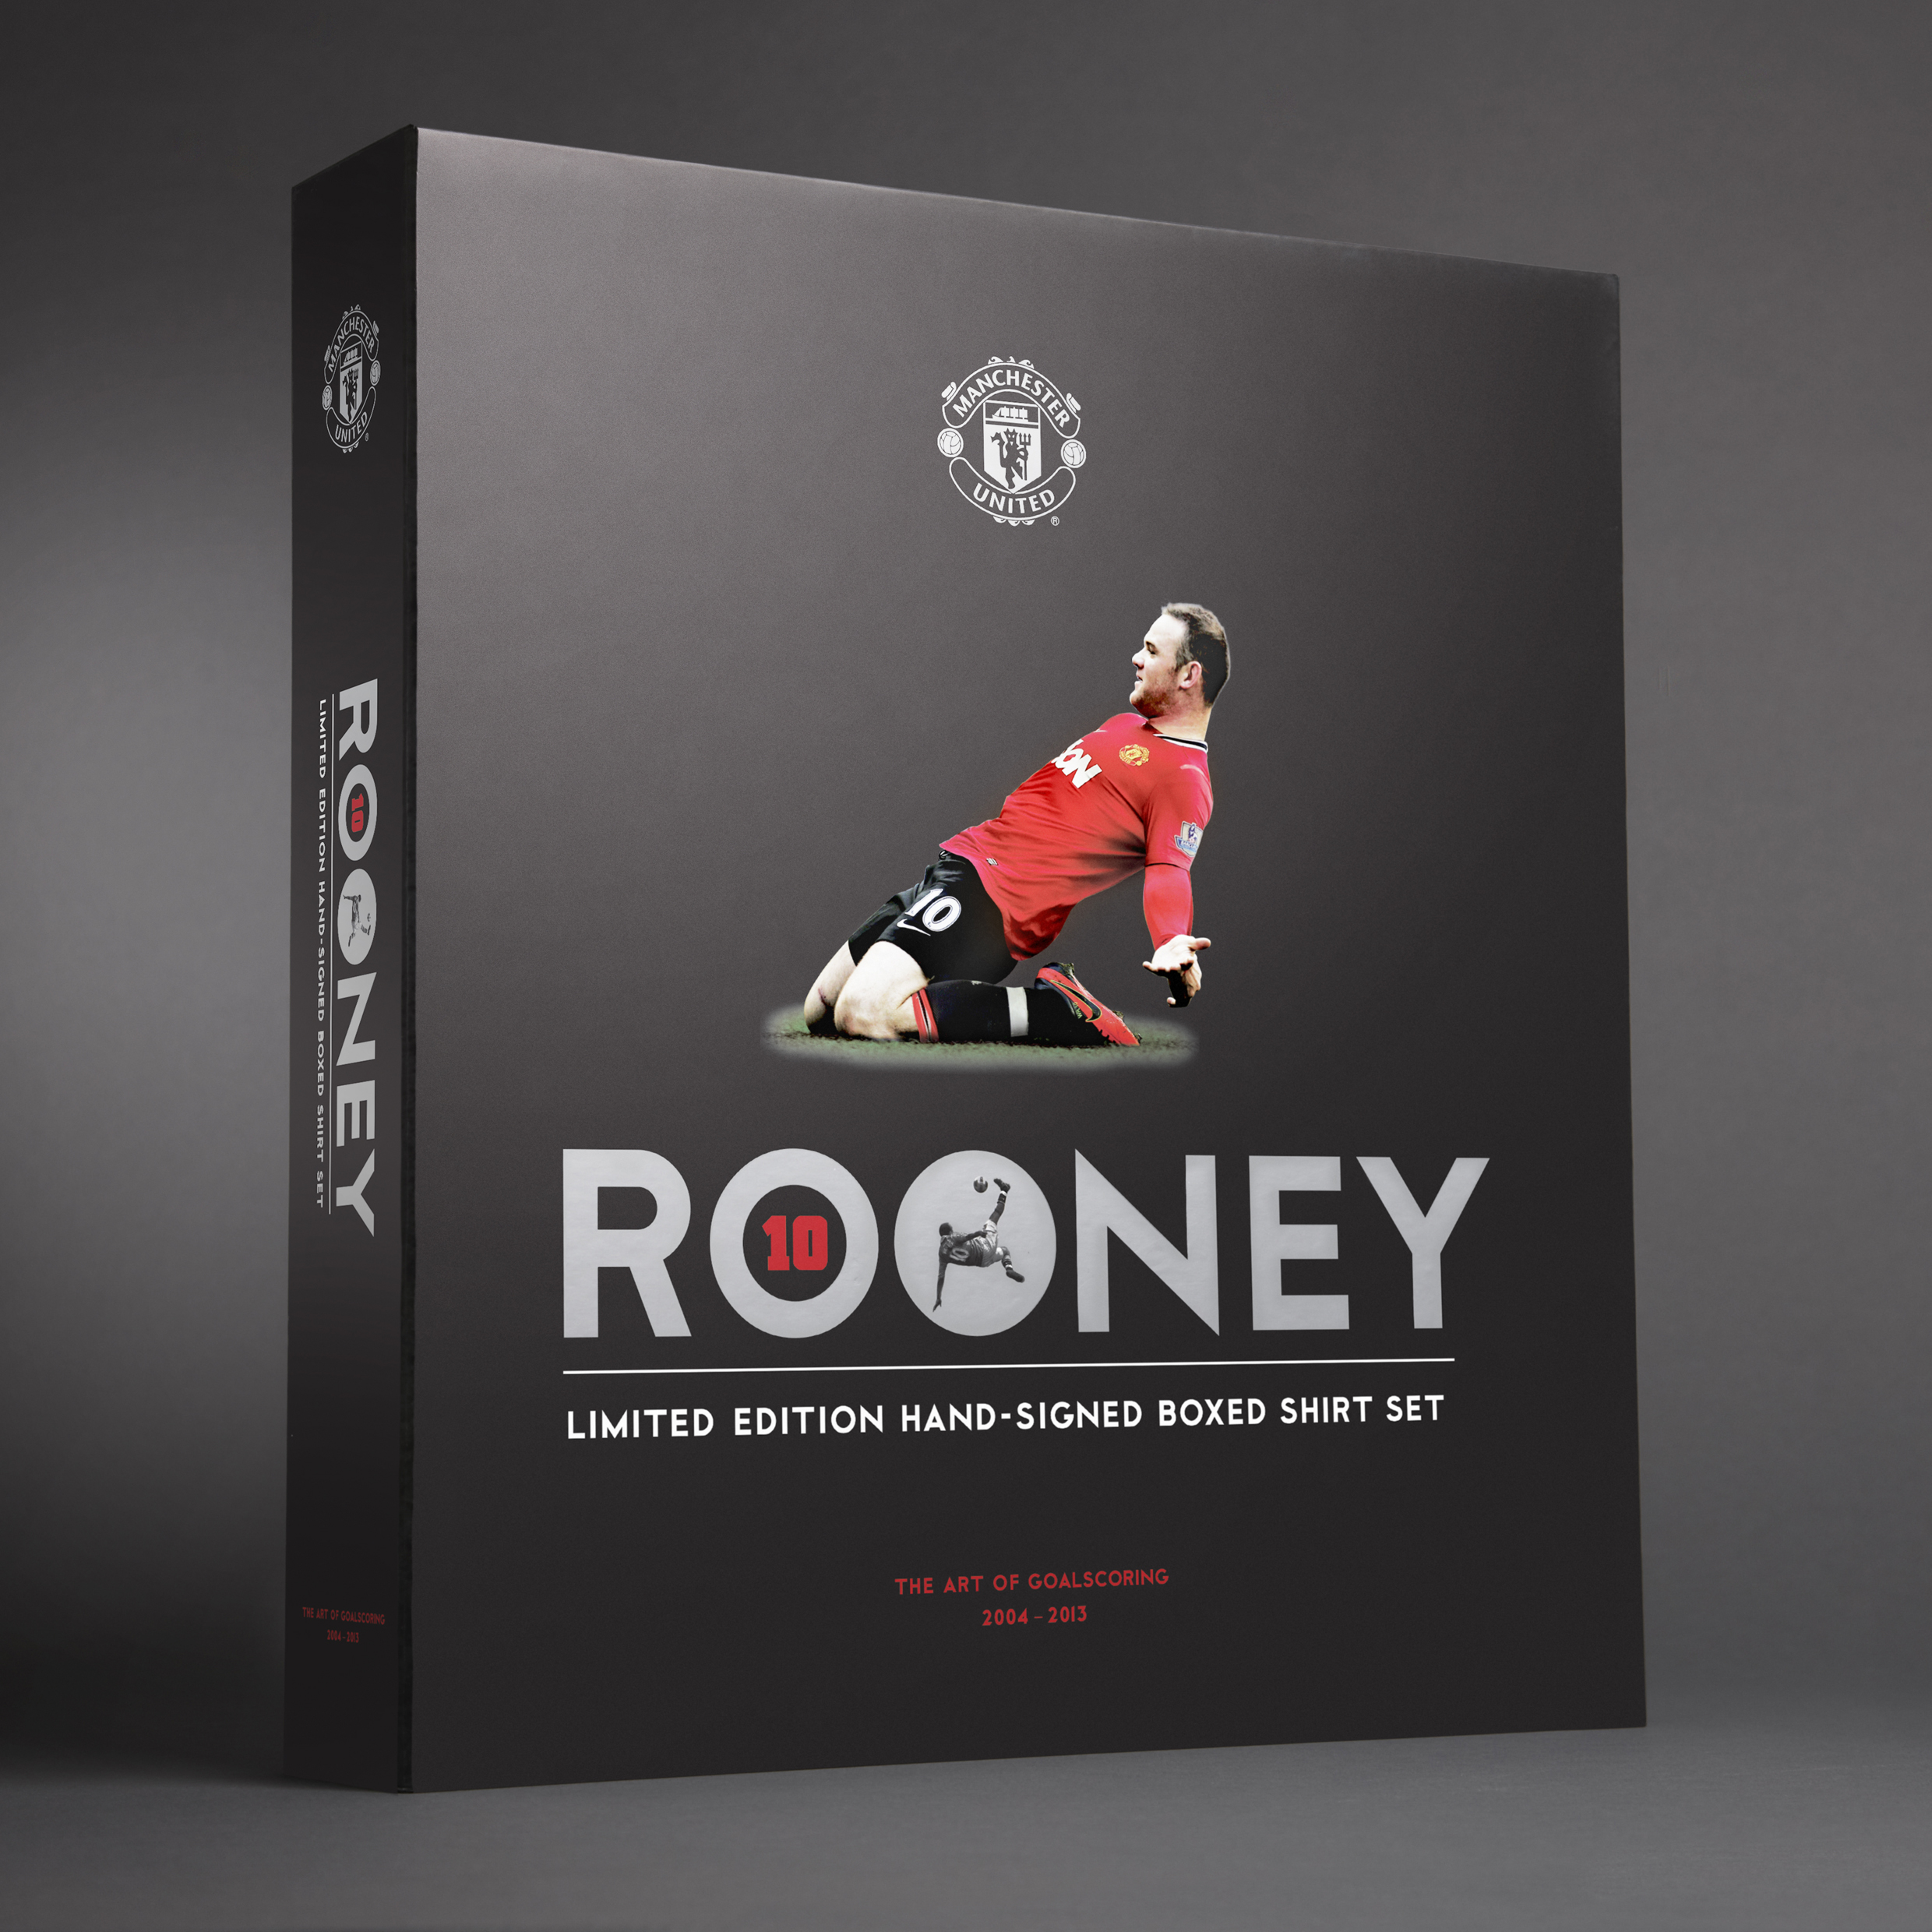 Manchester United Rooney 400 Appearances Limited Edition Hand Signed Boxed Shirt Set